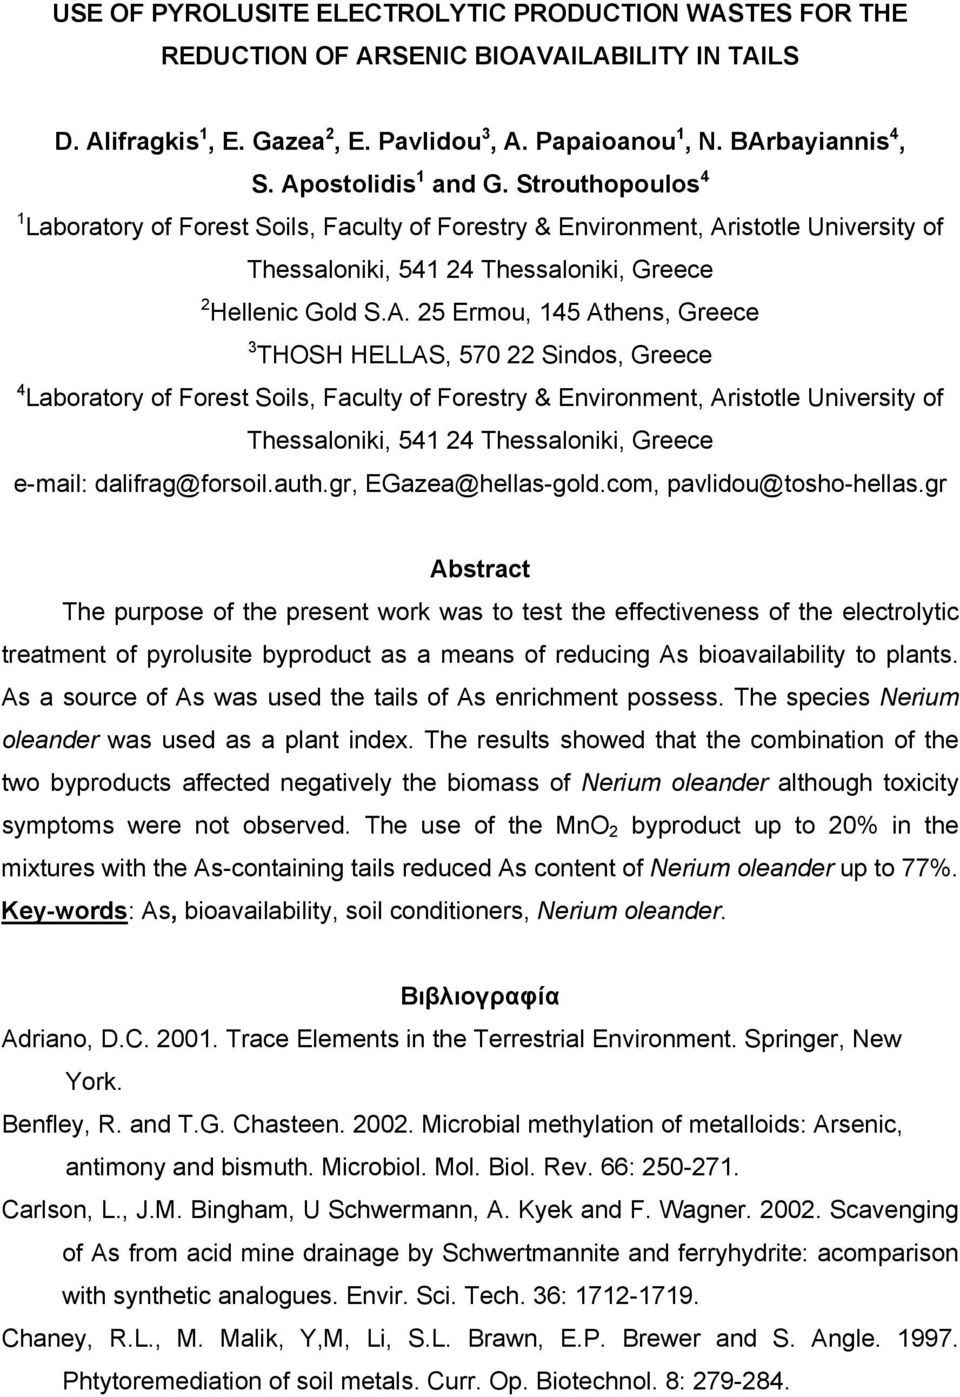 145 Athens, Greece 3 THOSH HELLAS, 570 22 Sindos, Greece 4 Laboratory of Forest Soils, Faculty of Forestry & Environment, Aristotle University of Thessaloniki, 541 24 Thessaloniki, Greece e-mail: